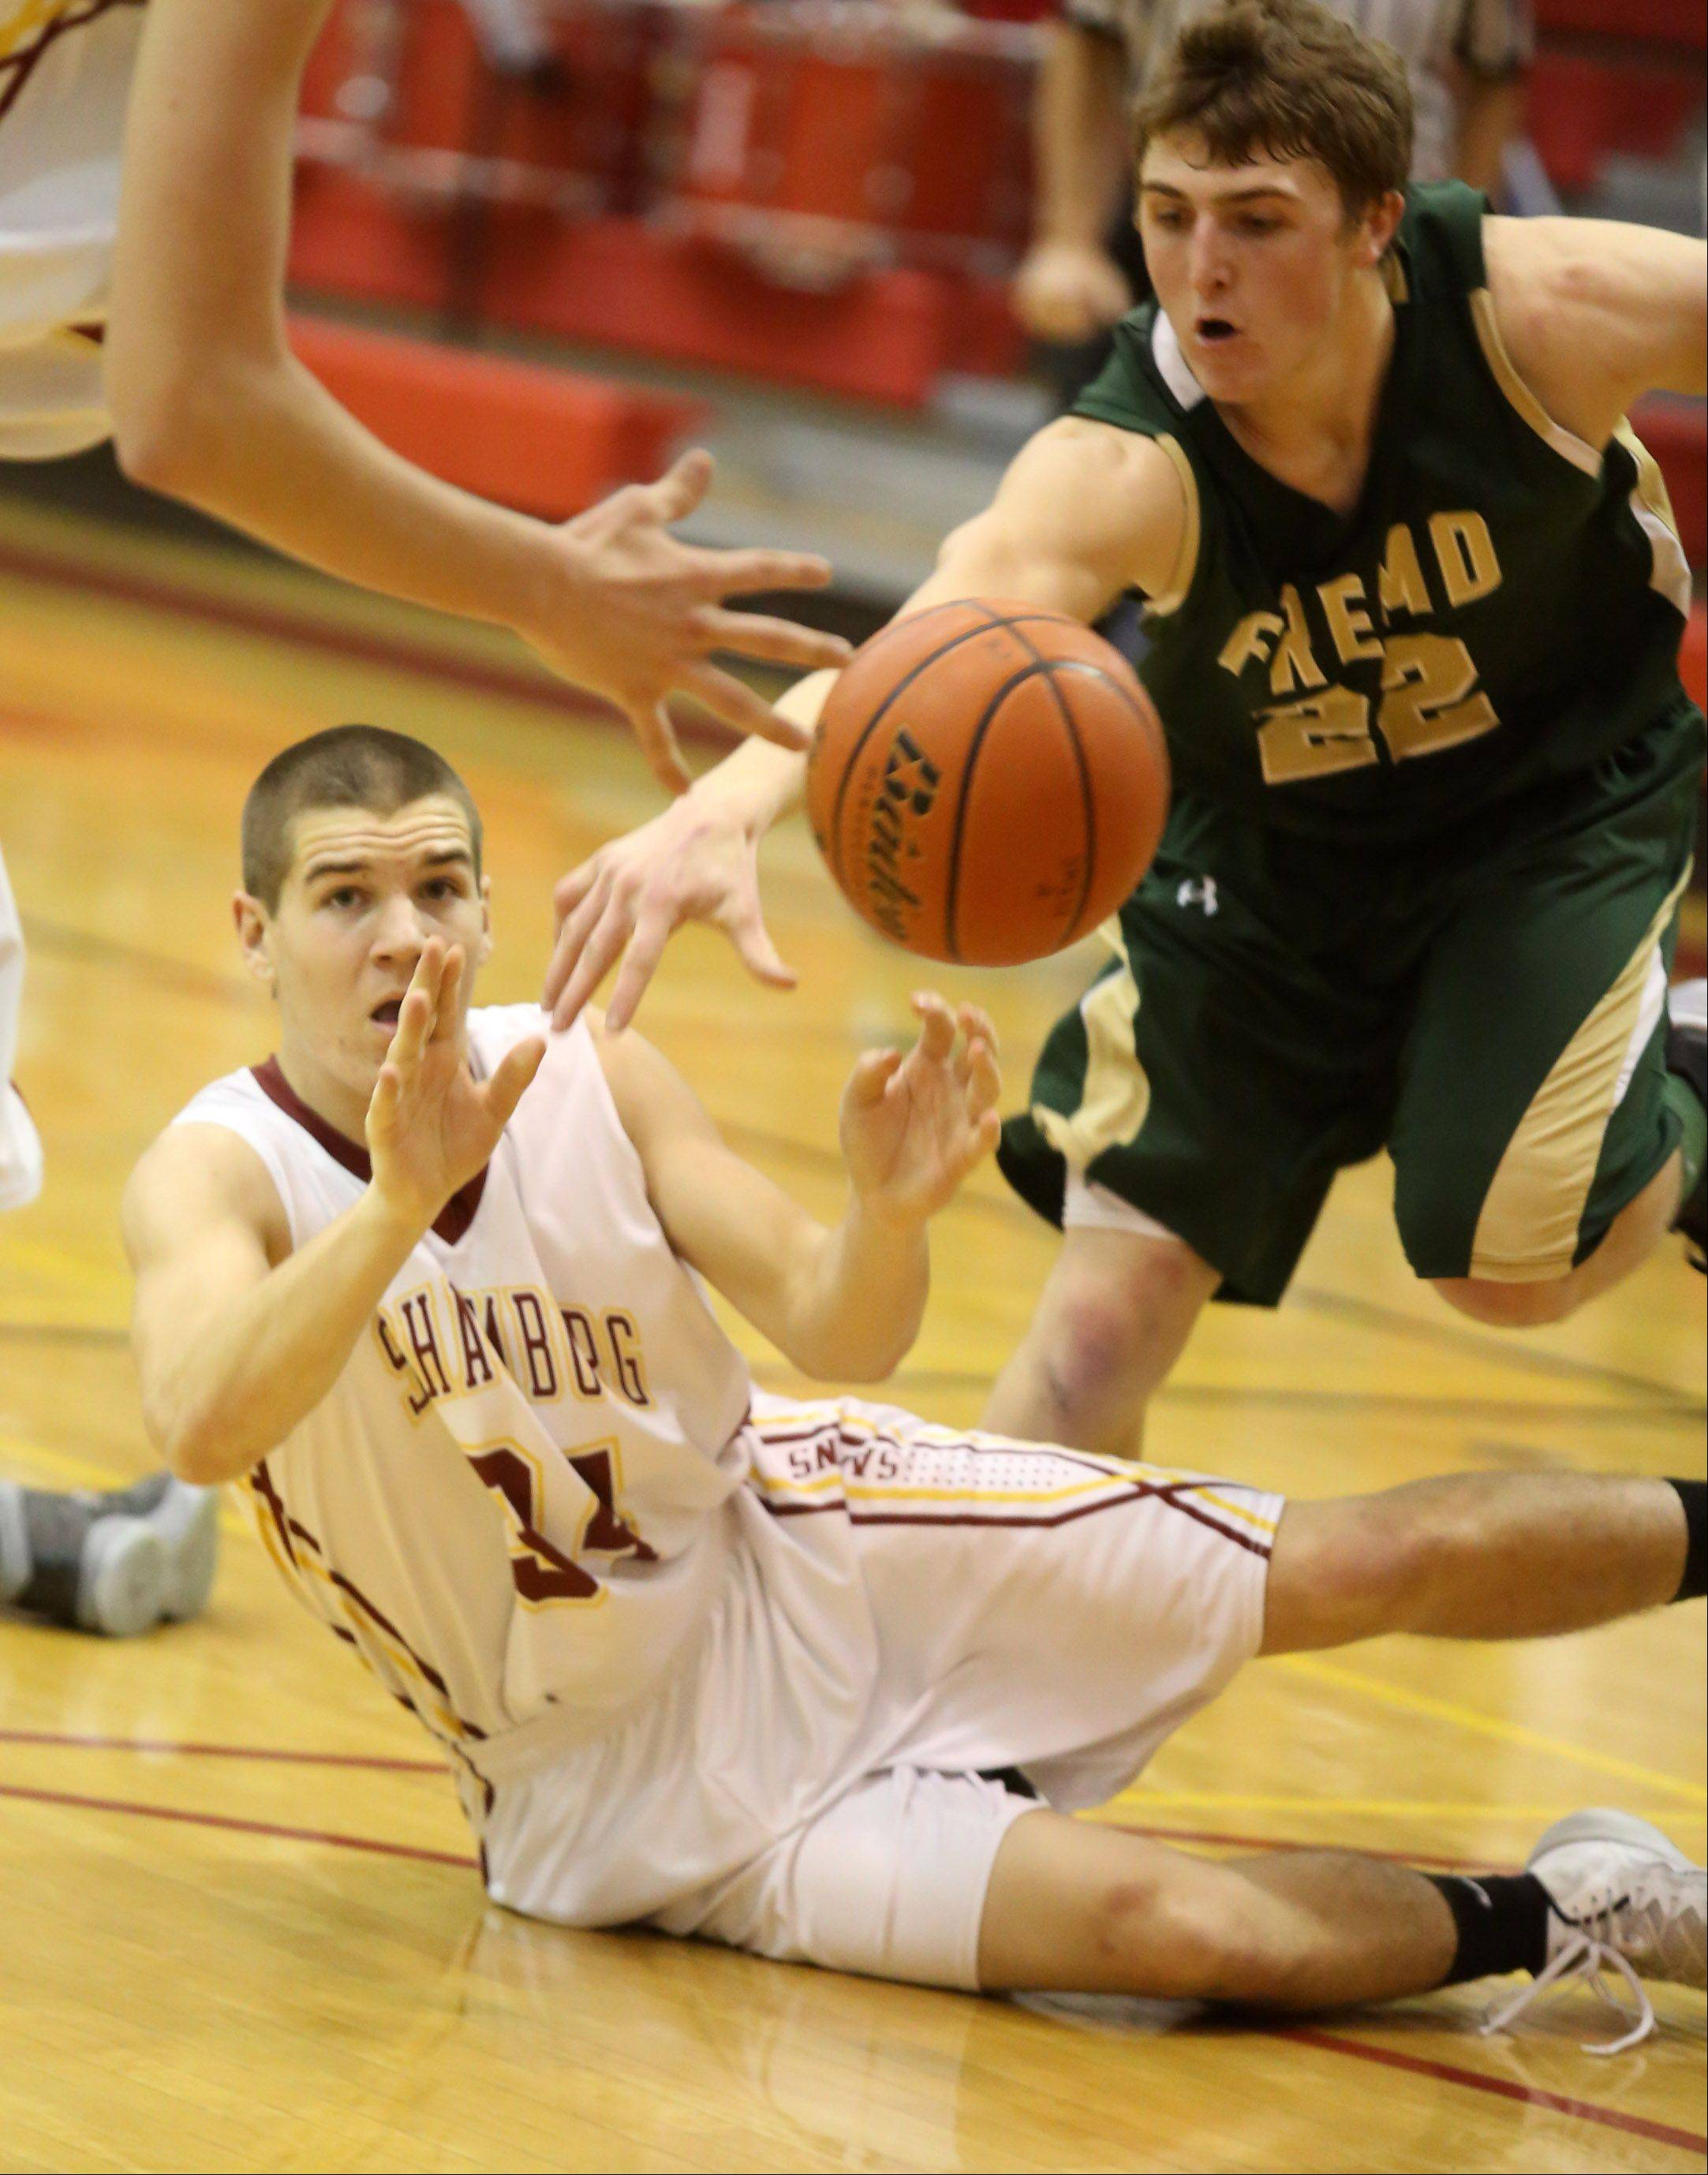 Schaumburg's Christopher Mullaney passes from the floor as Fremd's Garrett Groot pressures on Friday in Schaumburg.